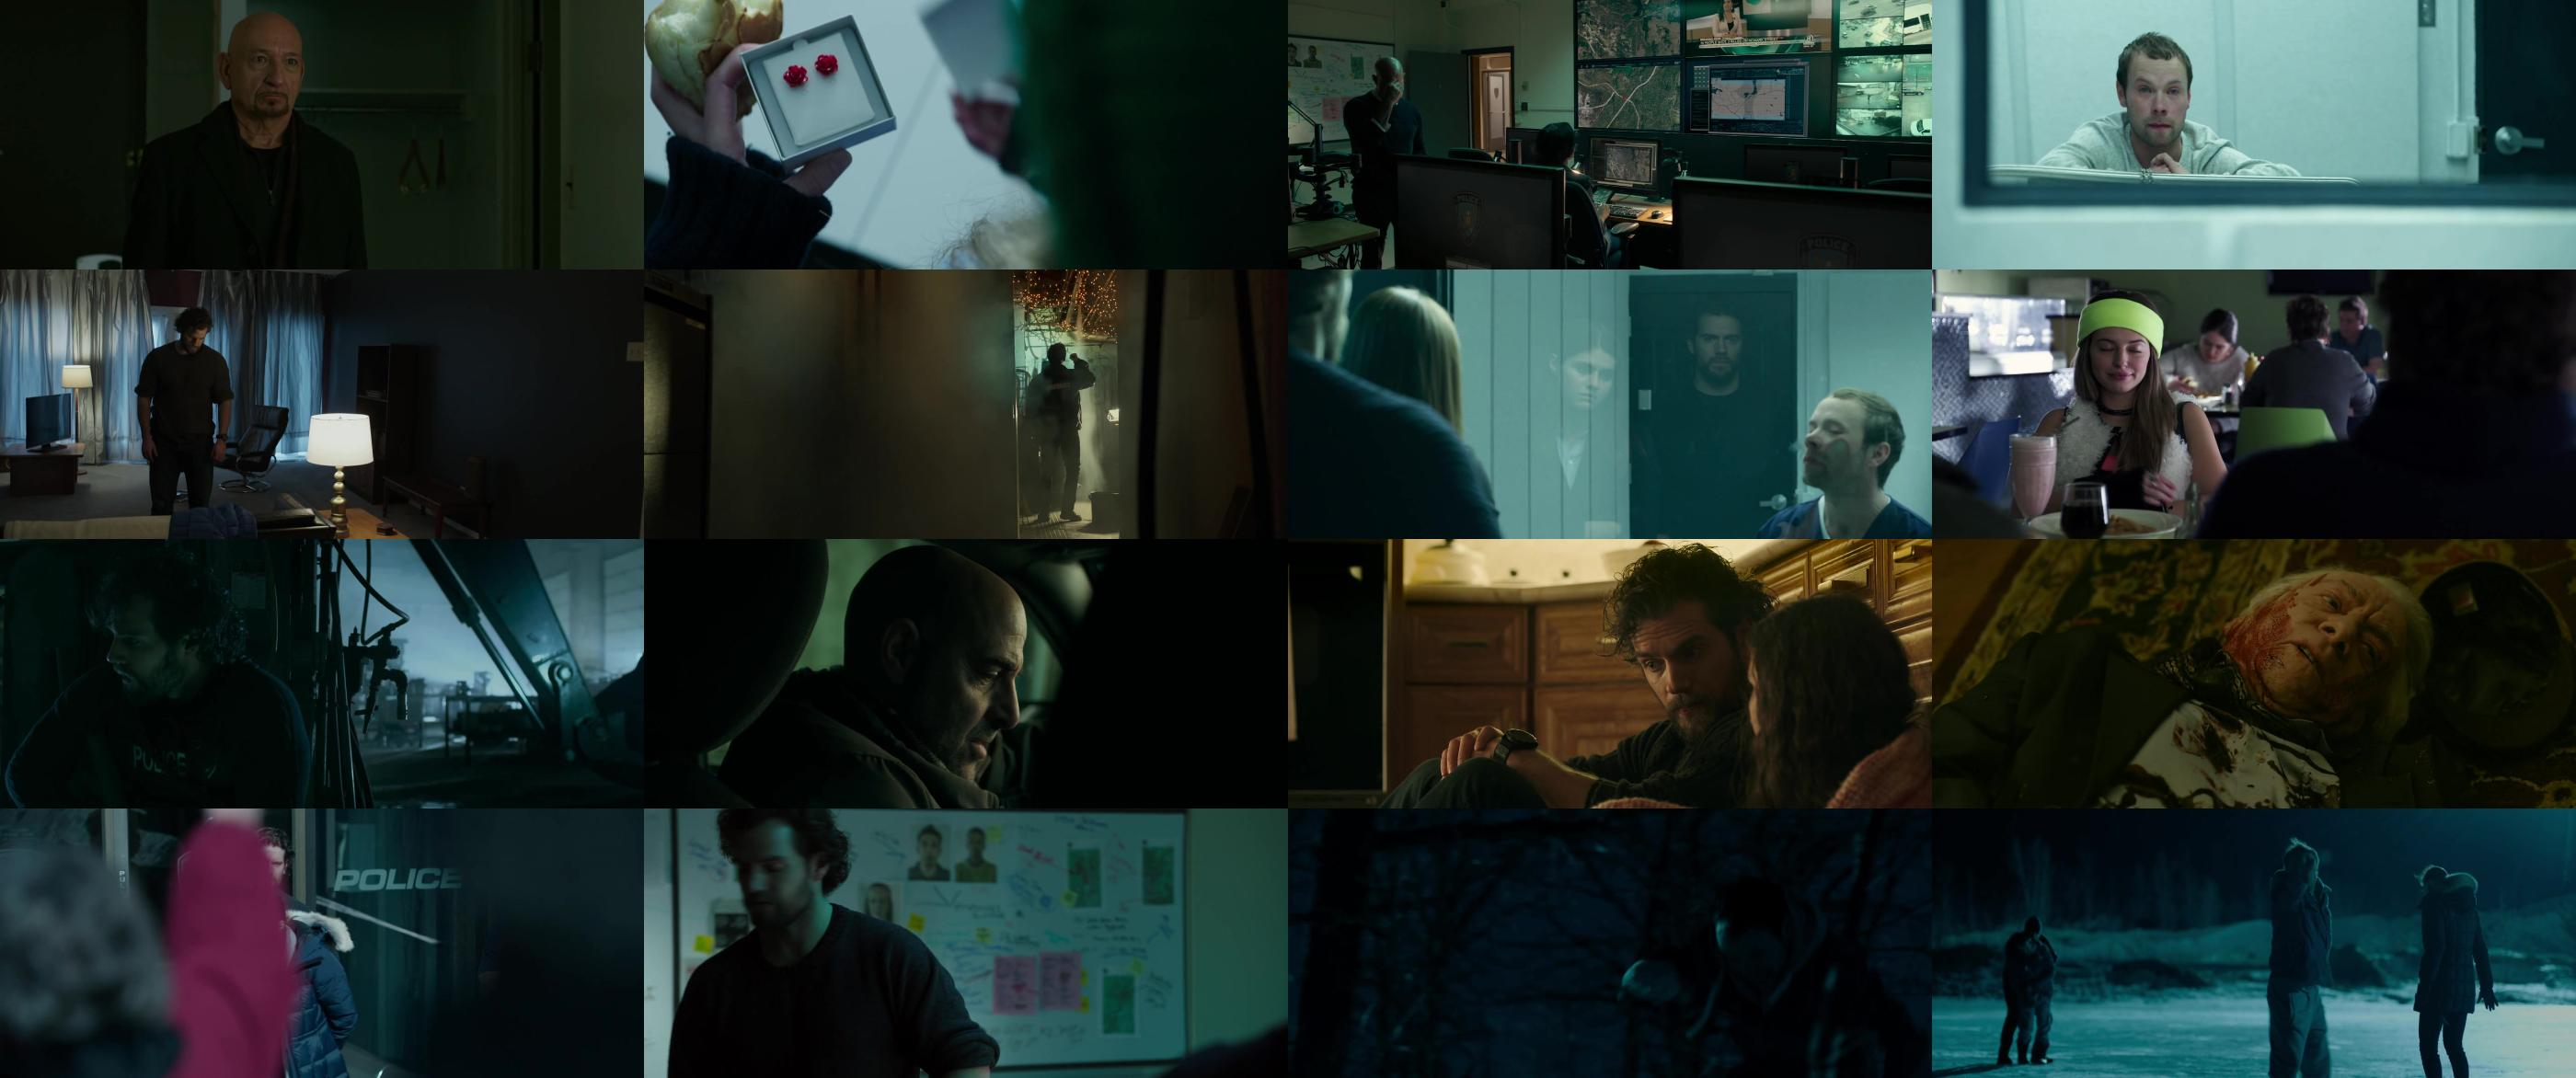 Nomis 2018 720p BRRip XviD AC3 XVID